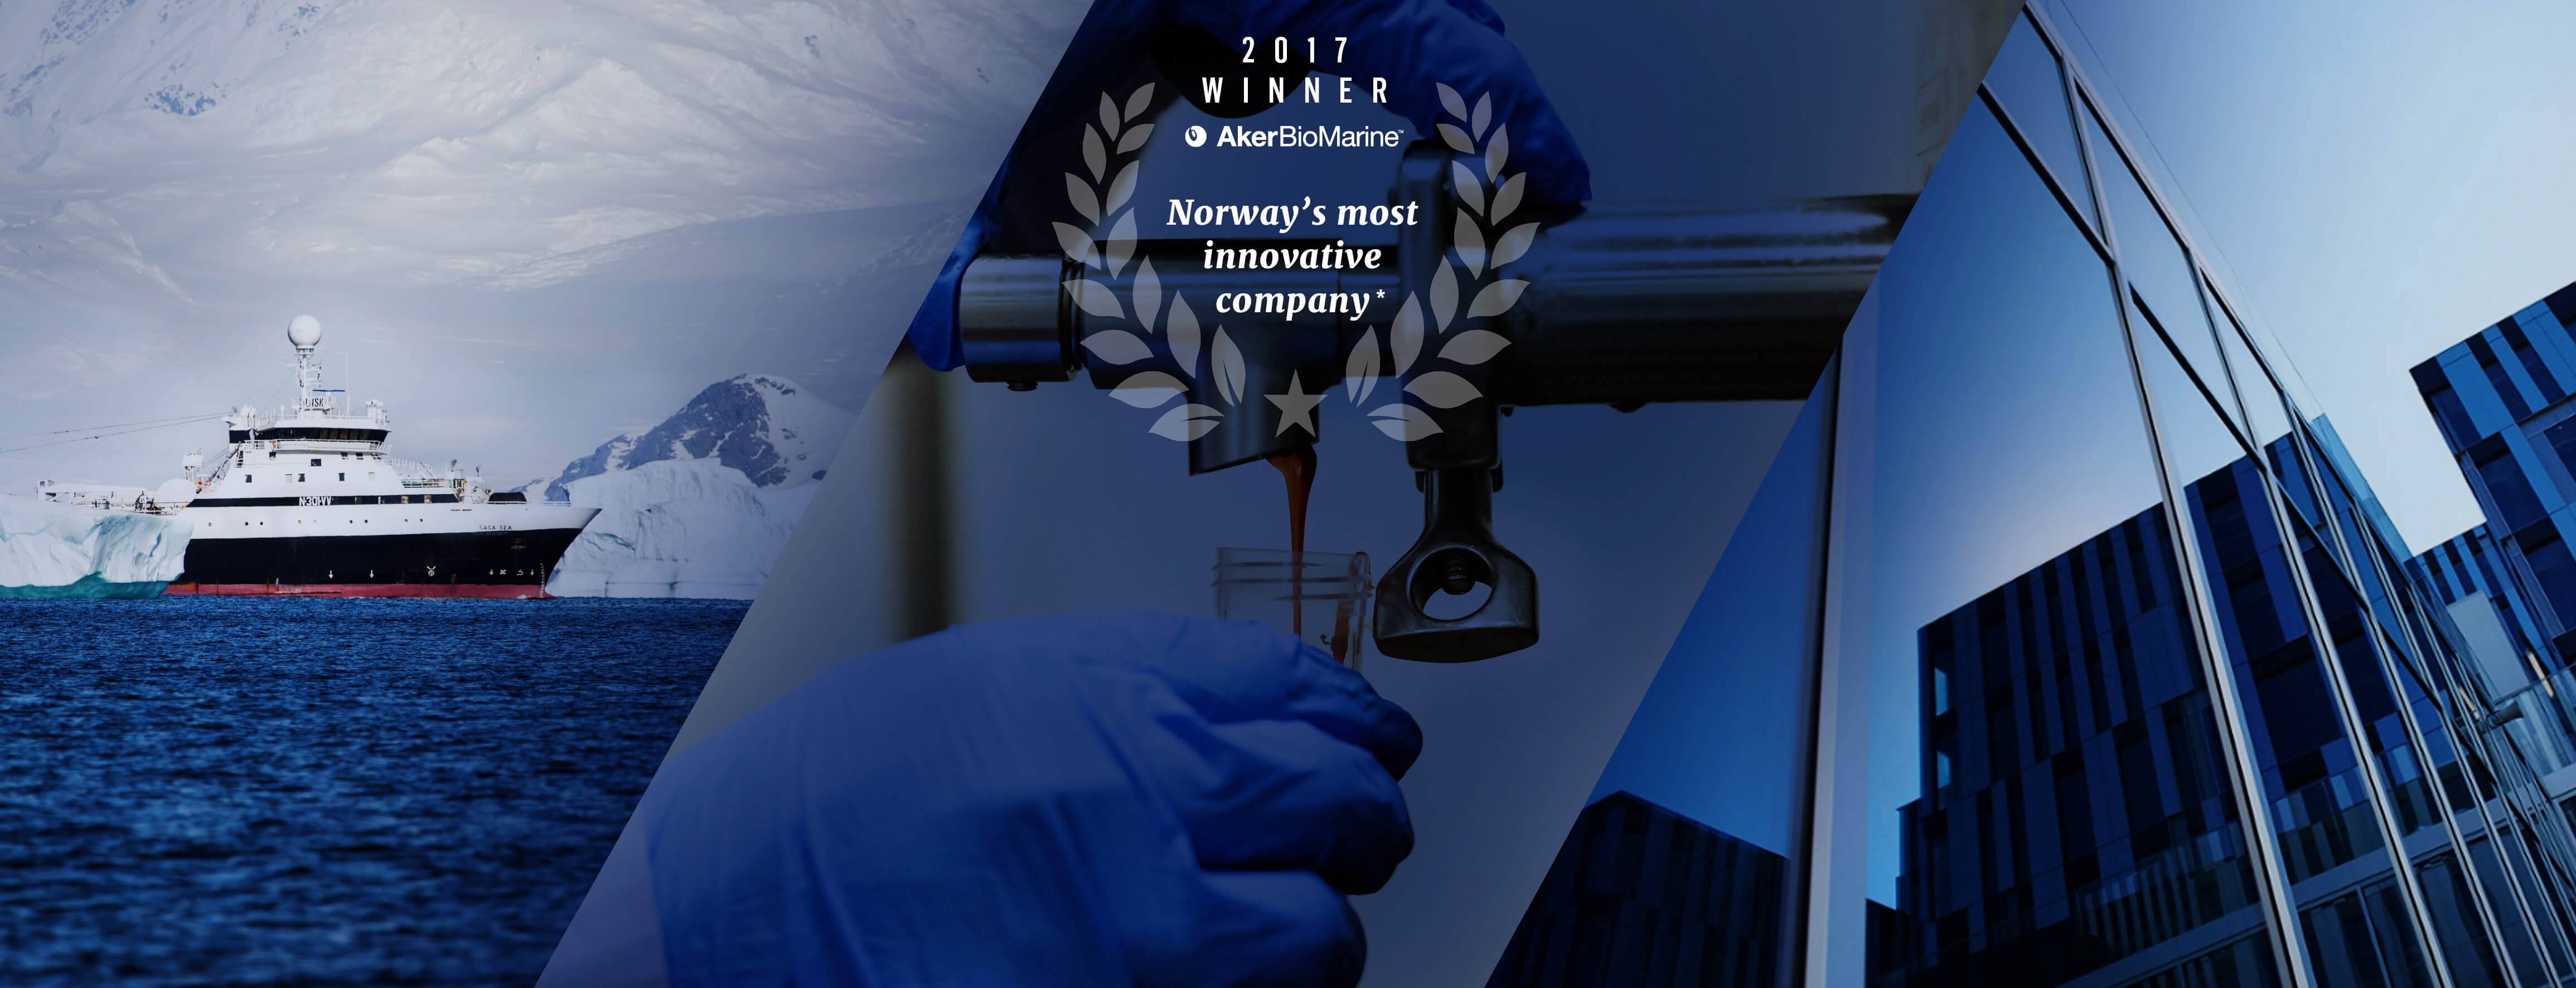 Aker BioMarine Named Most Innovative Business In Norway